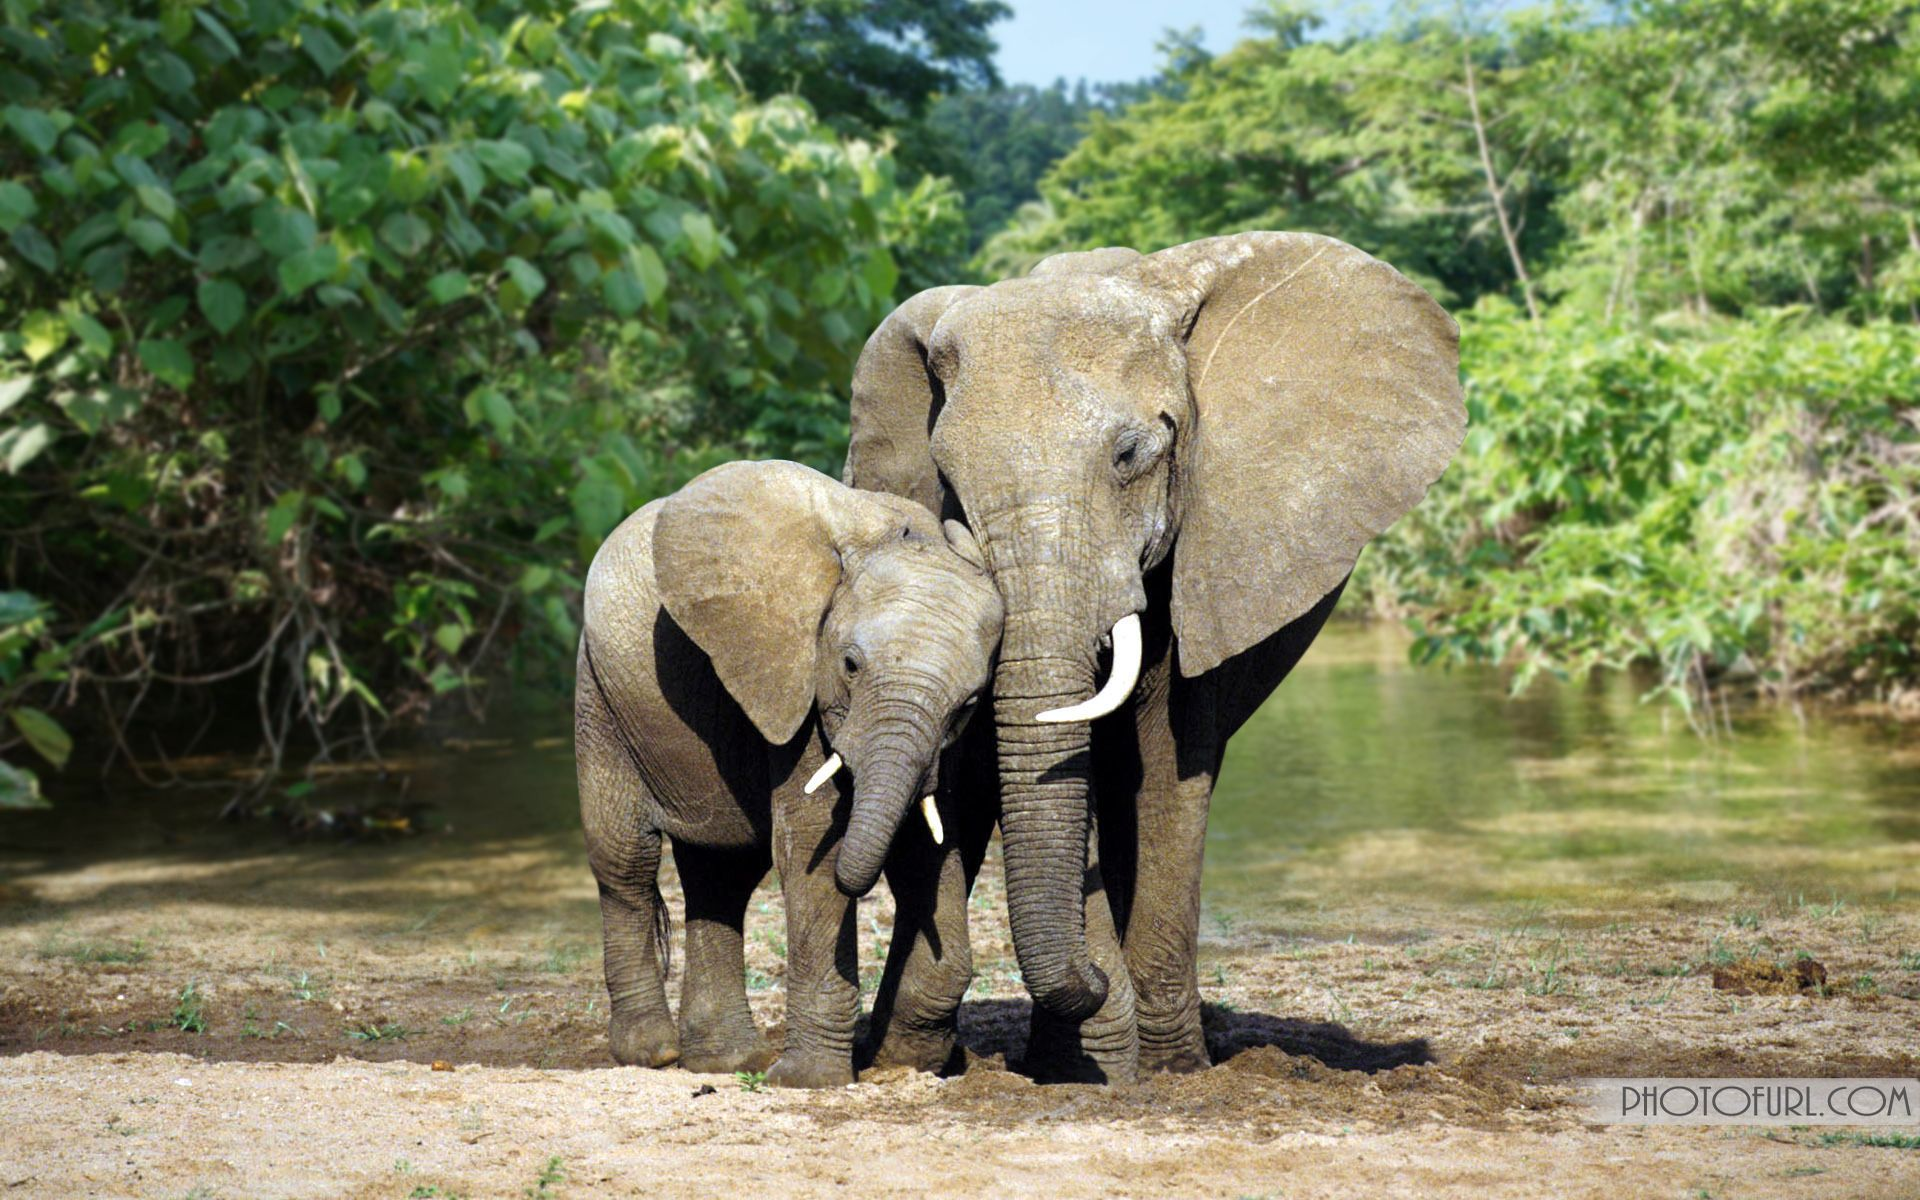 elephants are the social animals they live in groups and support